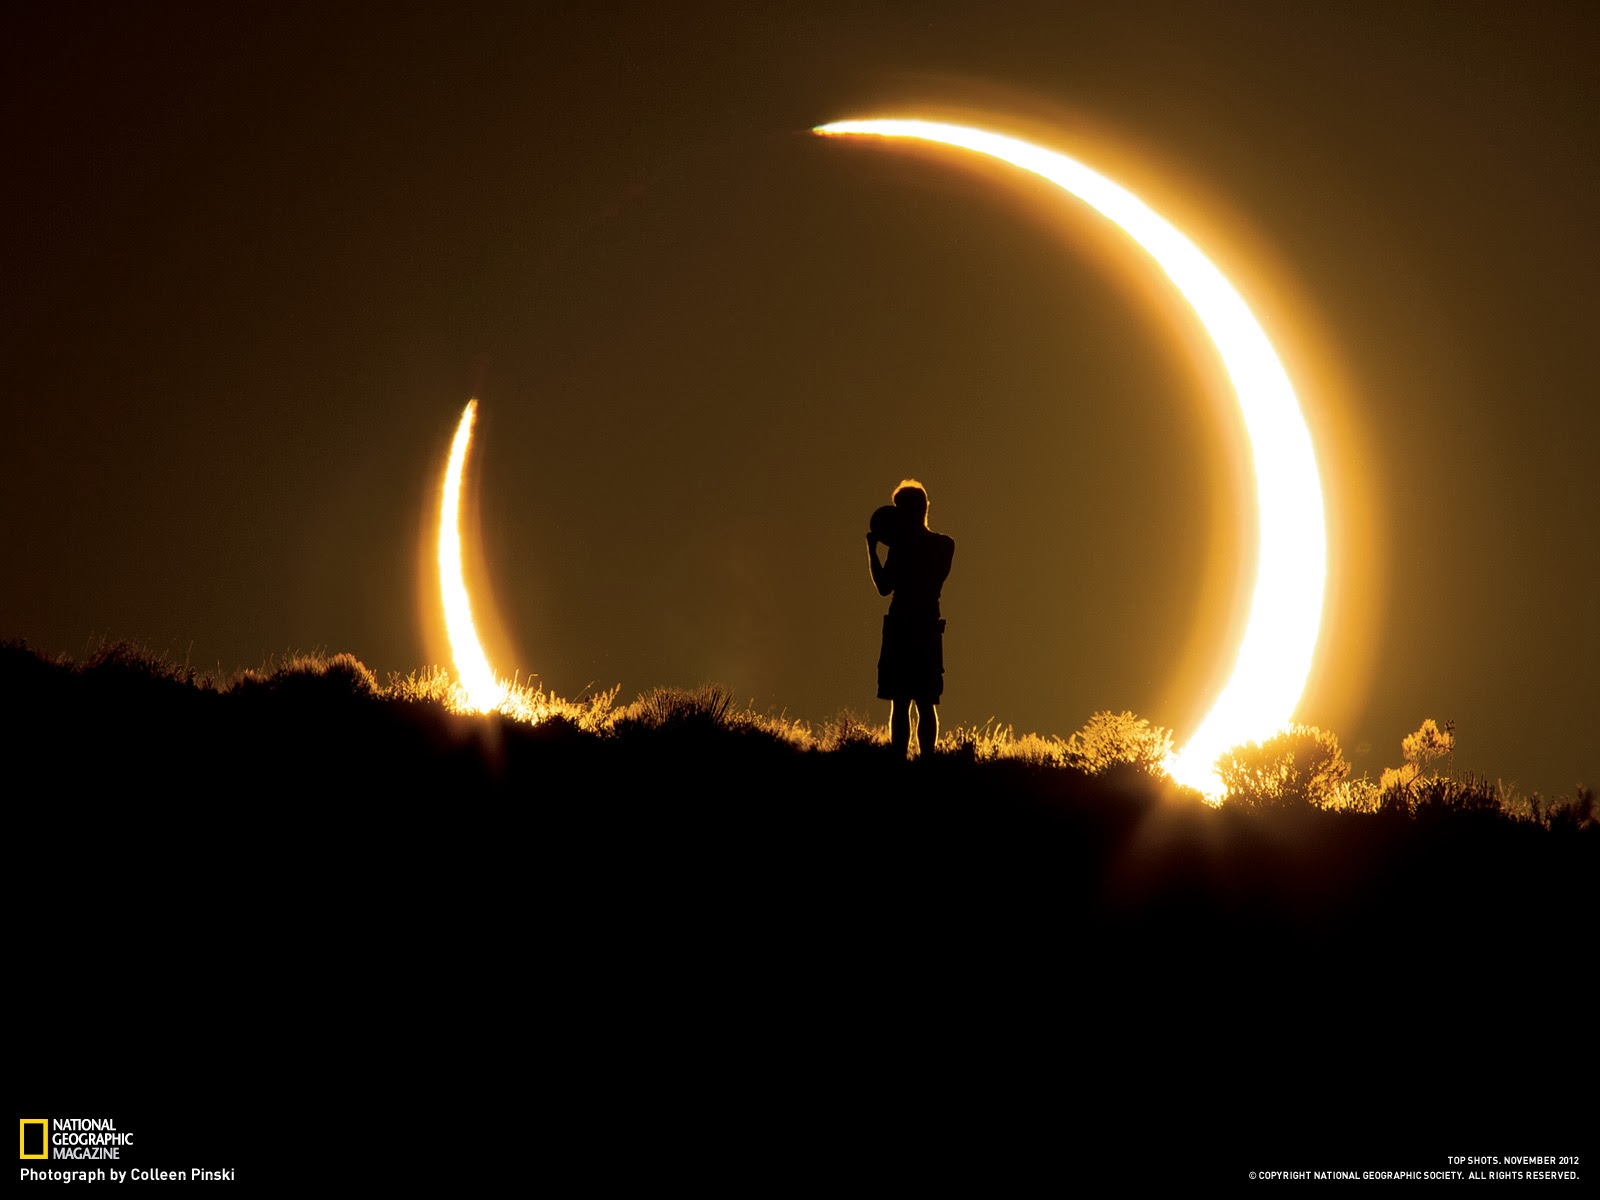 Solar Eclipse wallpaper 1600x1200 56408